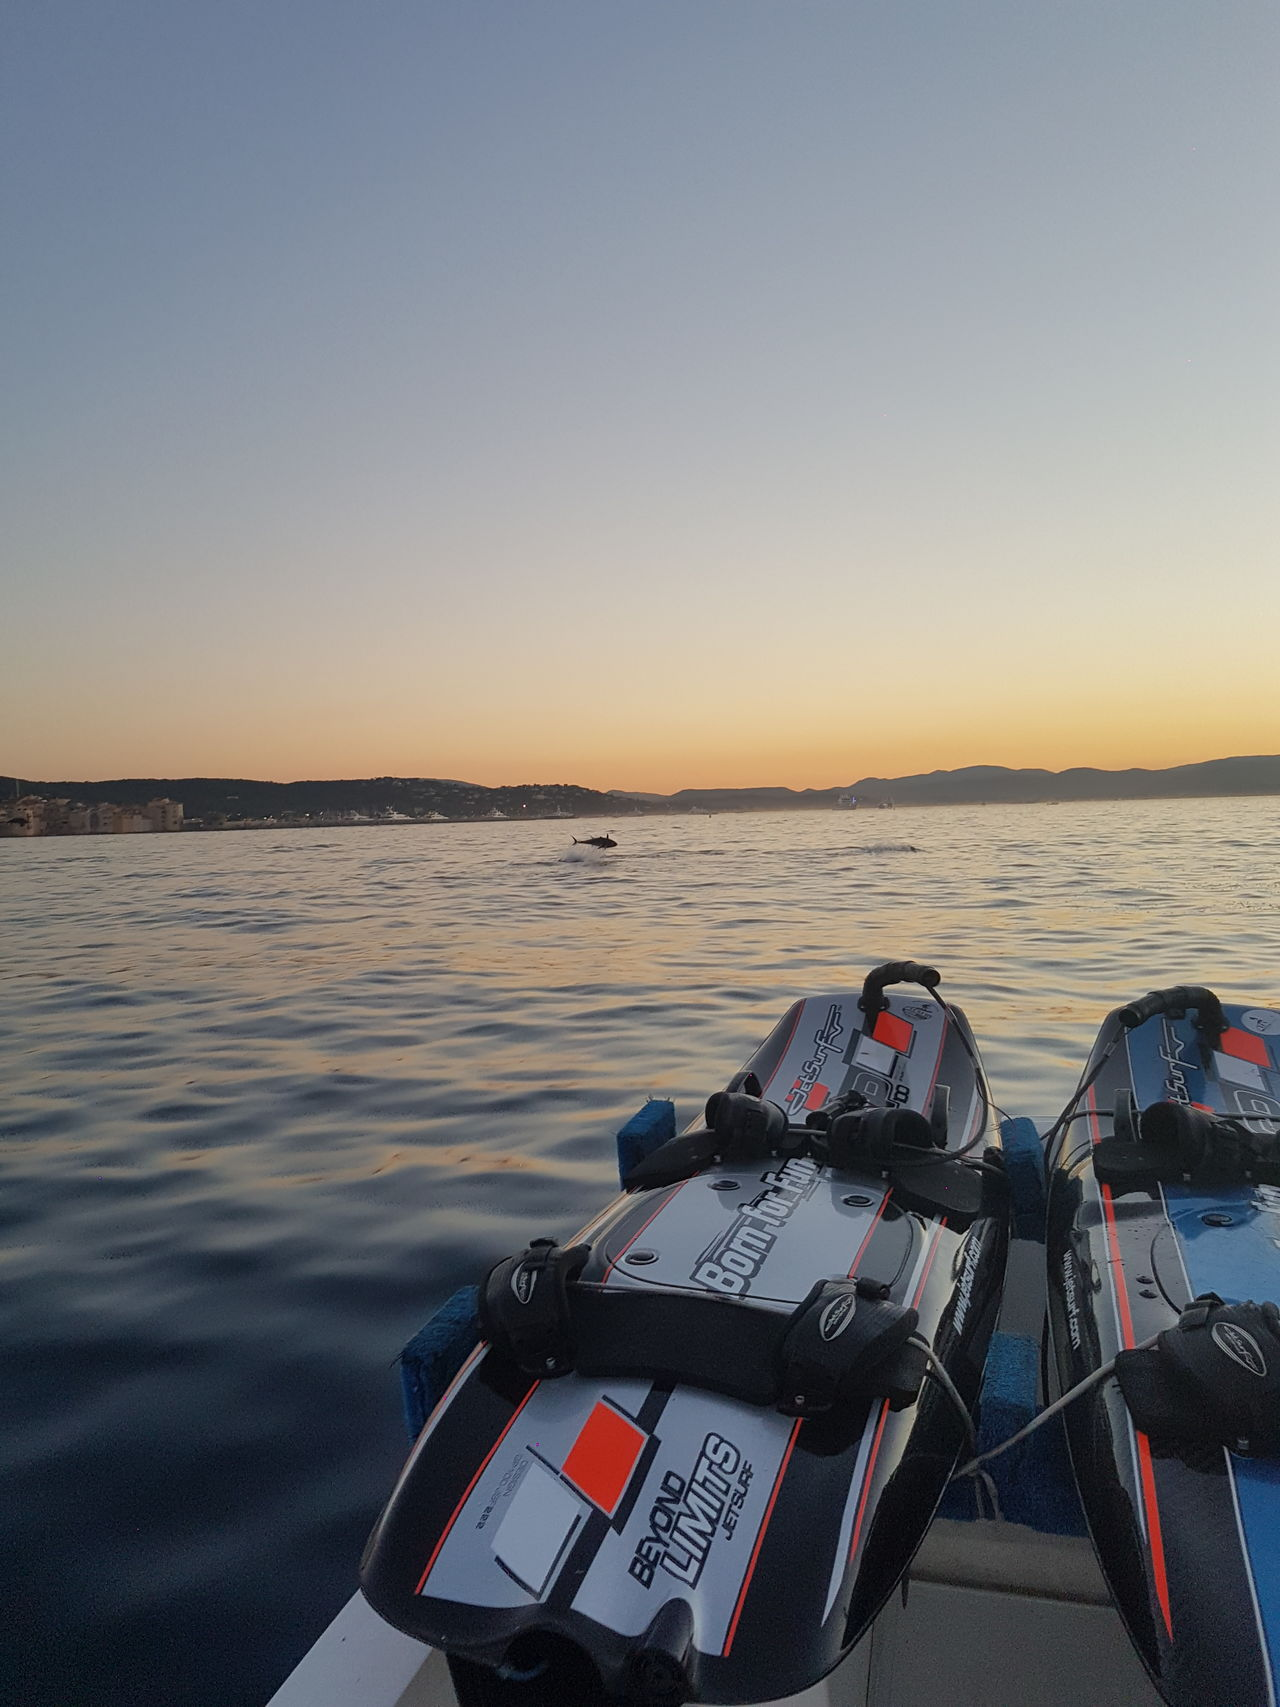 Tuna Jetsurf Sunset Sea No People Outdoors Water Travel Beauty In Nature Saint-Tropez